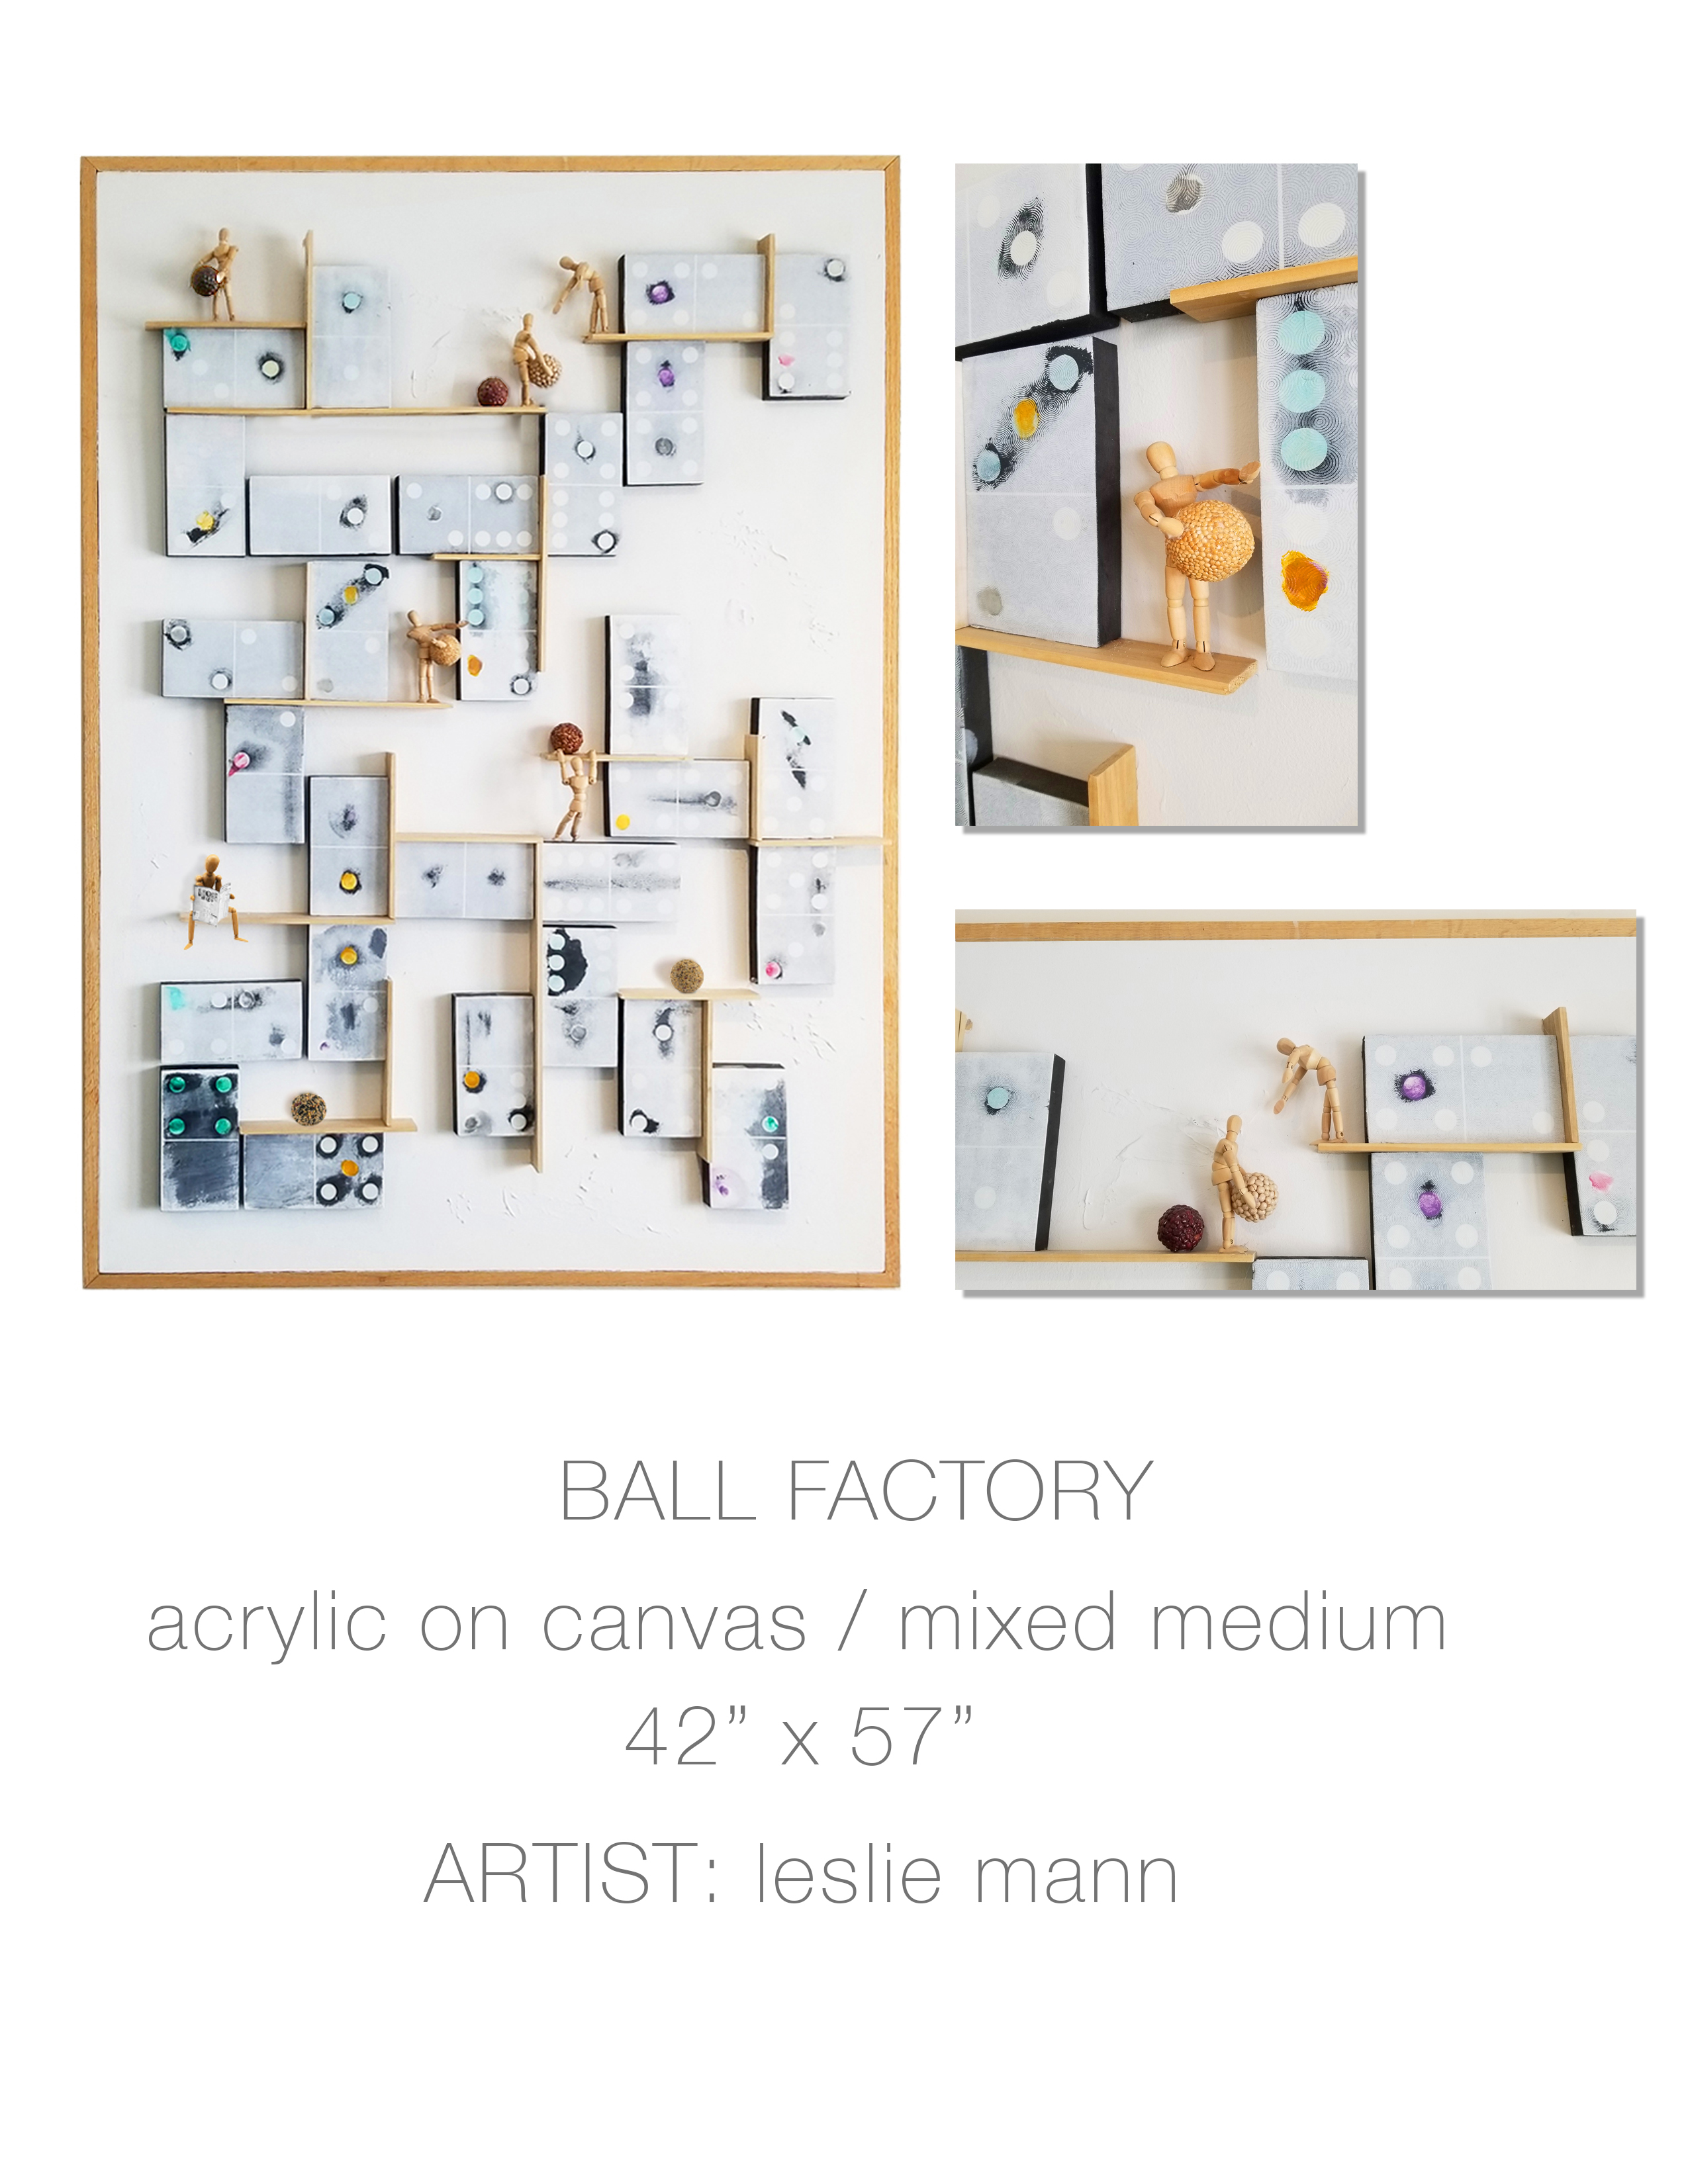 The Ball Factory